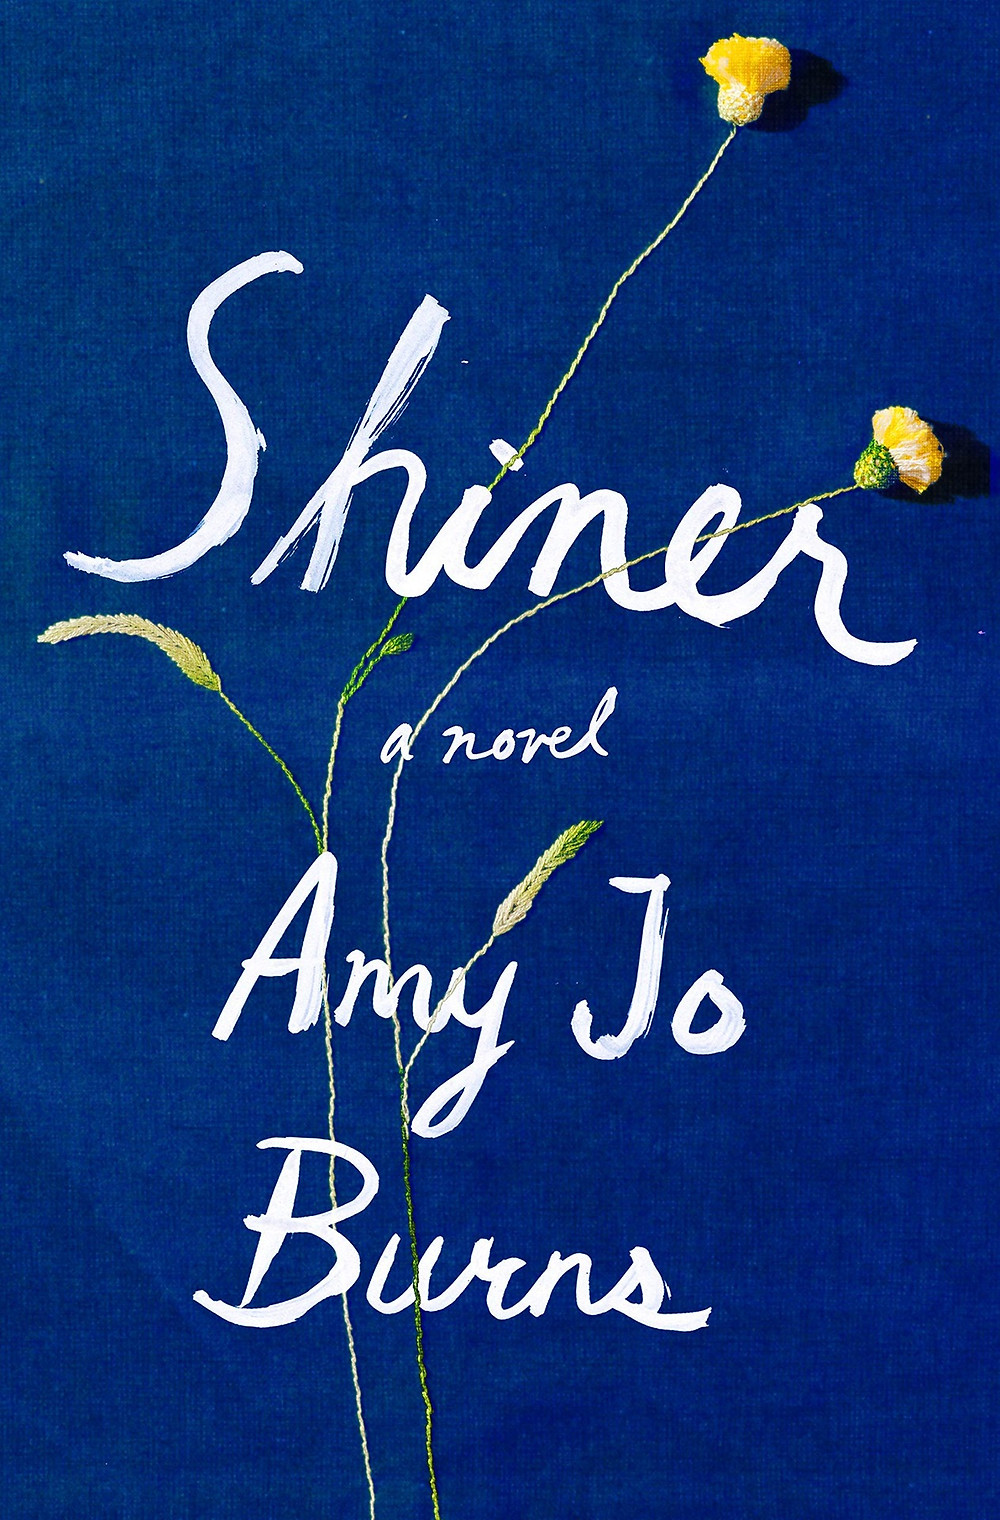 Shiner by Amy Jo Burns. Blue bok cover with small yellow flowers and white font. Amy Jo Burns is the author of the memoir Cinderland. Her writing has appeared in The Paris Review Daily, Tin House, Ploughshares, Gay Magazine, Electric Literature, Literary Hub, and The Paris Review Daily, and the anthology Not That Bad. Thebookslut book reviews the book slut.On a lush mountaintop trapped in time, two women vow to protect each other at all costs-and one young girl must defy her father to survive. An hour from the closest West Virginia mining town, fifteen-year-old Wren Bird lives in a cloistered mountain cabin with her parents. They have no car, no mailbox, and no visitors-except for her mother's lifelong best friend. Every Sunday, Wren's father delivers winding sermons in an abandoned gas station, where he takes up serpents and praises the Lord for his blighted white eye, proof of his divinity and key to the hold he has over the community, over Wren and her mother. But over the course of one summer, a miracle performed by Wren's father quickly turns to tragedy. As the order of her world begins to shatter, Wren must uncover the truth of her father's mysterious legend and her mother's harrowing history and complex bond with her best friend. And with that newfound knowledge, Wren can imagine a different future for herself than she has been told to expect. Rich with epic love and epic loss, and diving deep into a world that is often forgotten but still part of America, Shiner reveals the hidden story behind two generations' worth of Appalachian heartbreak and resolve. Amy Jo Burns brings us a smoldering, taut debut novel about modern female myth-making in a land of men-and one young girl who must ultimately open her eyes. Product Details Price: $27.00  $24.30 Publisher: Riverhead Books Published Date: May 05, 2020 Pages: 272 Dimensions: 6.0 X 0.69 X 9.0 inches | 1.0 pounds Language: English Type: Hardcover ISBN: 9780525533641 BISAC Categories: General Women